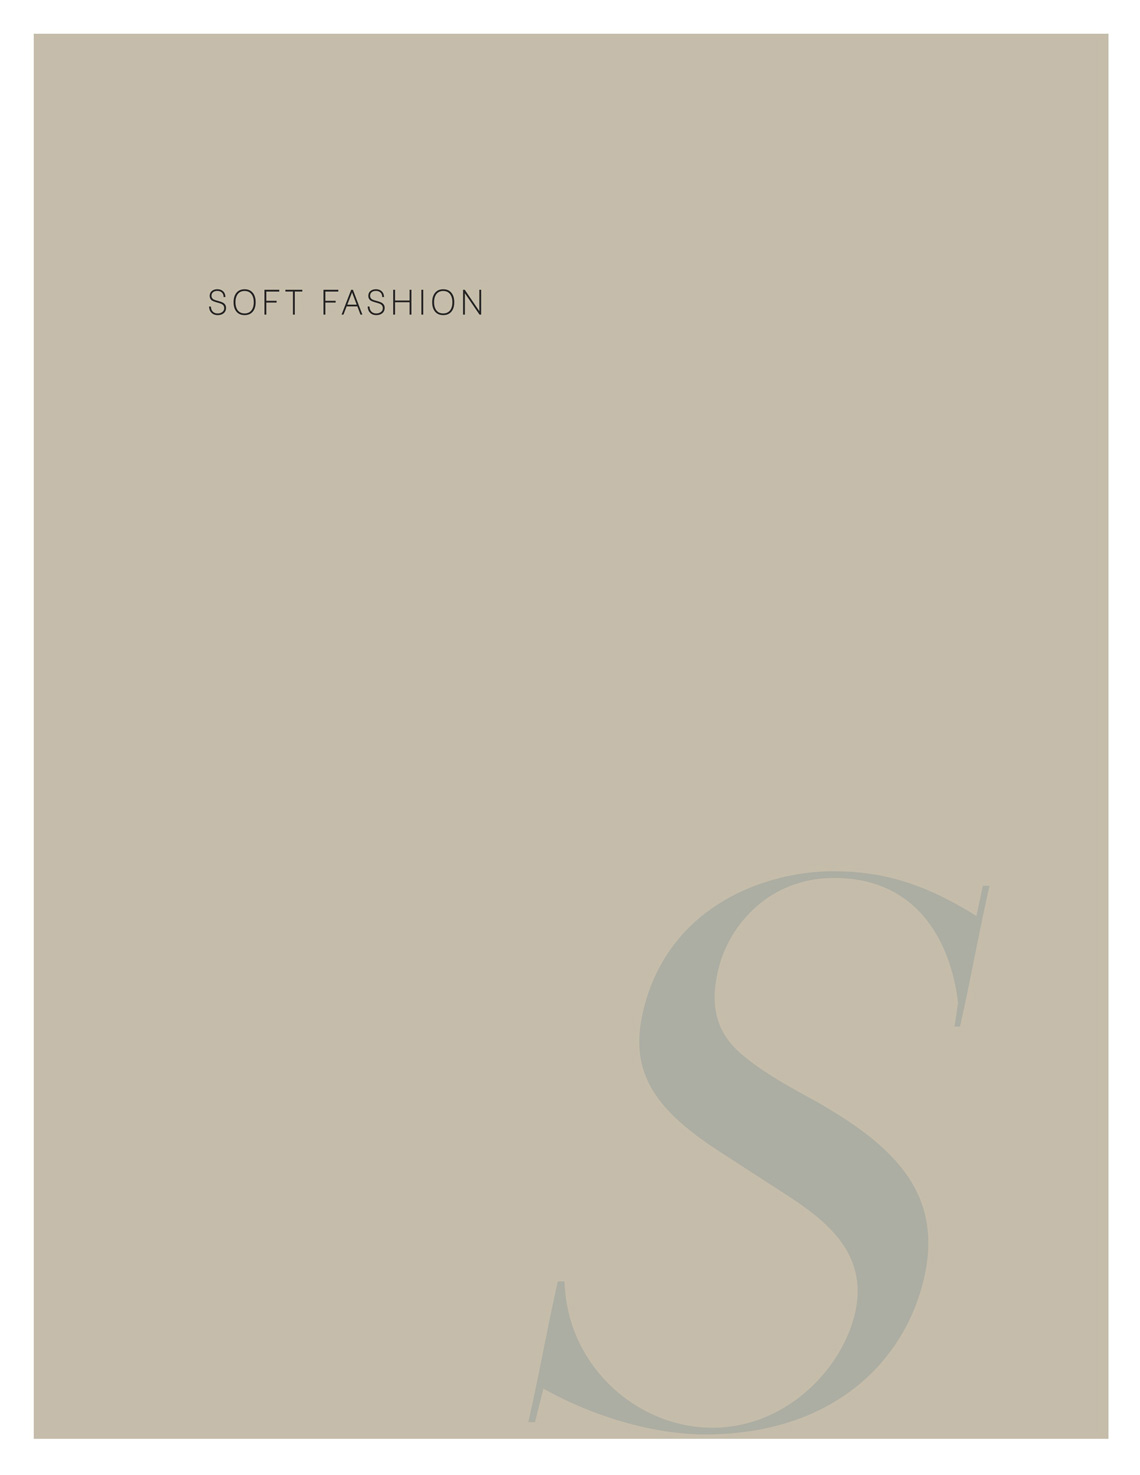 SOFT FASHION